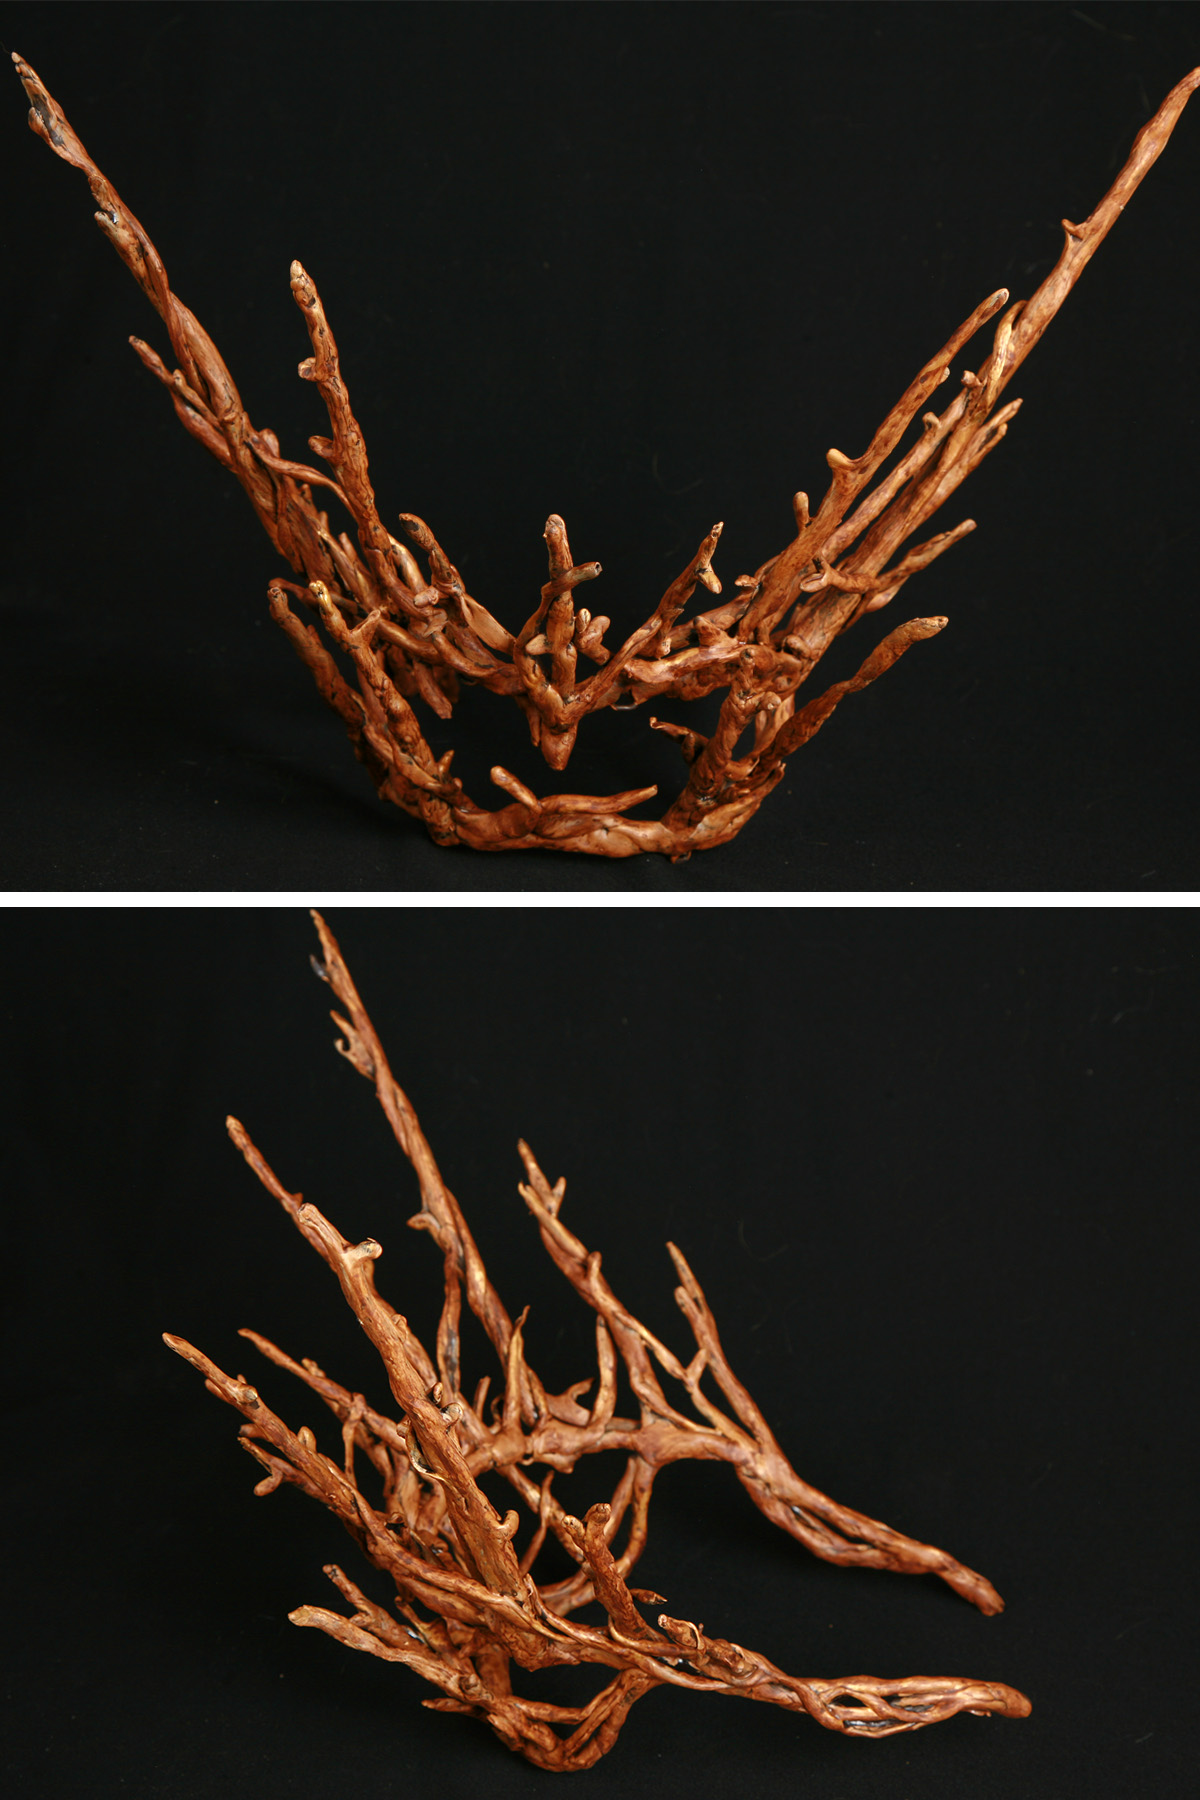 A multi part image showing differnt views of a plastic replica of a Thranduil crown - from The Hobbit -painted to look realistically like wooden twigs.